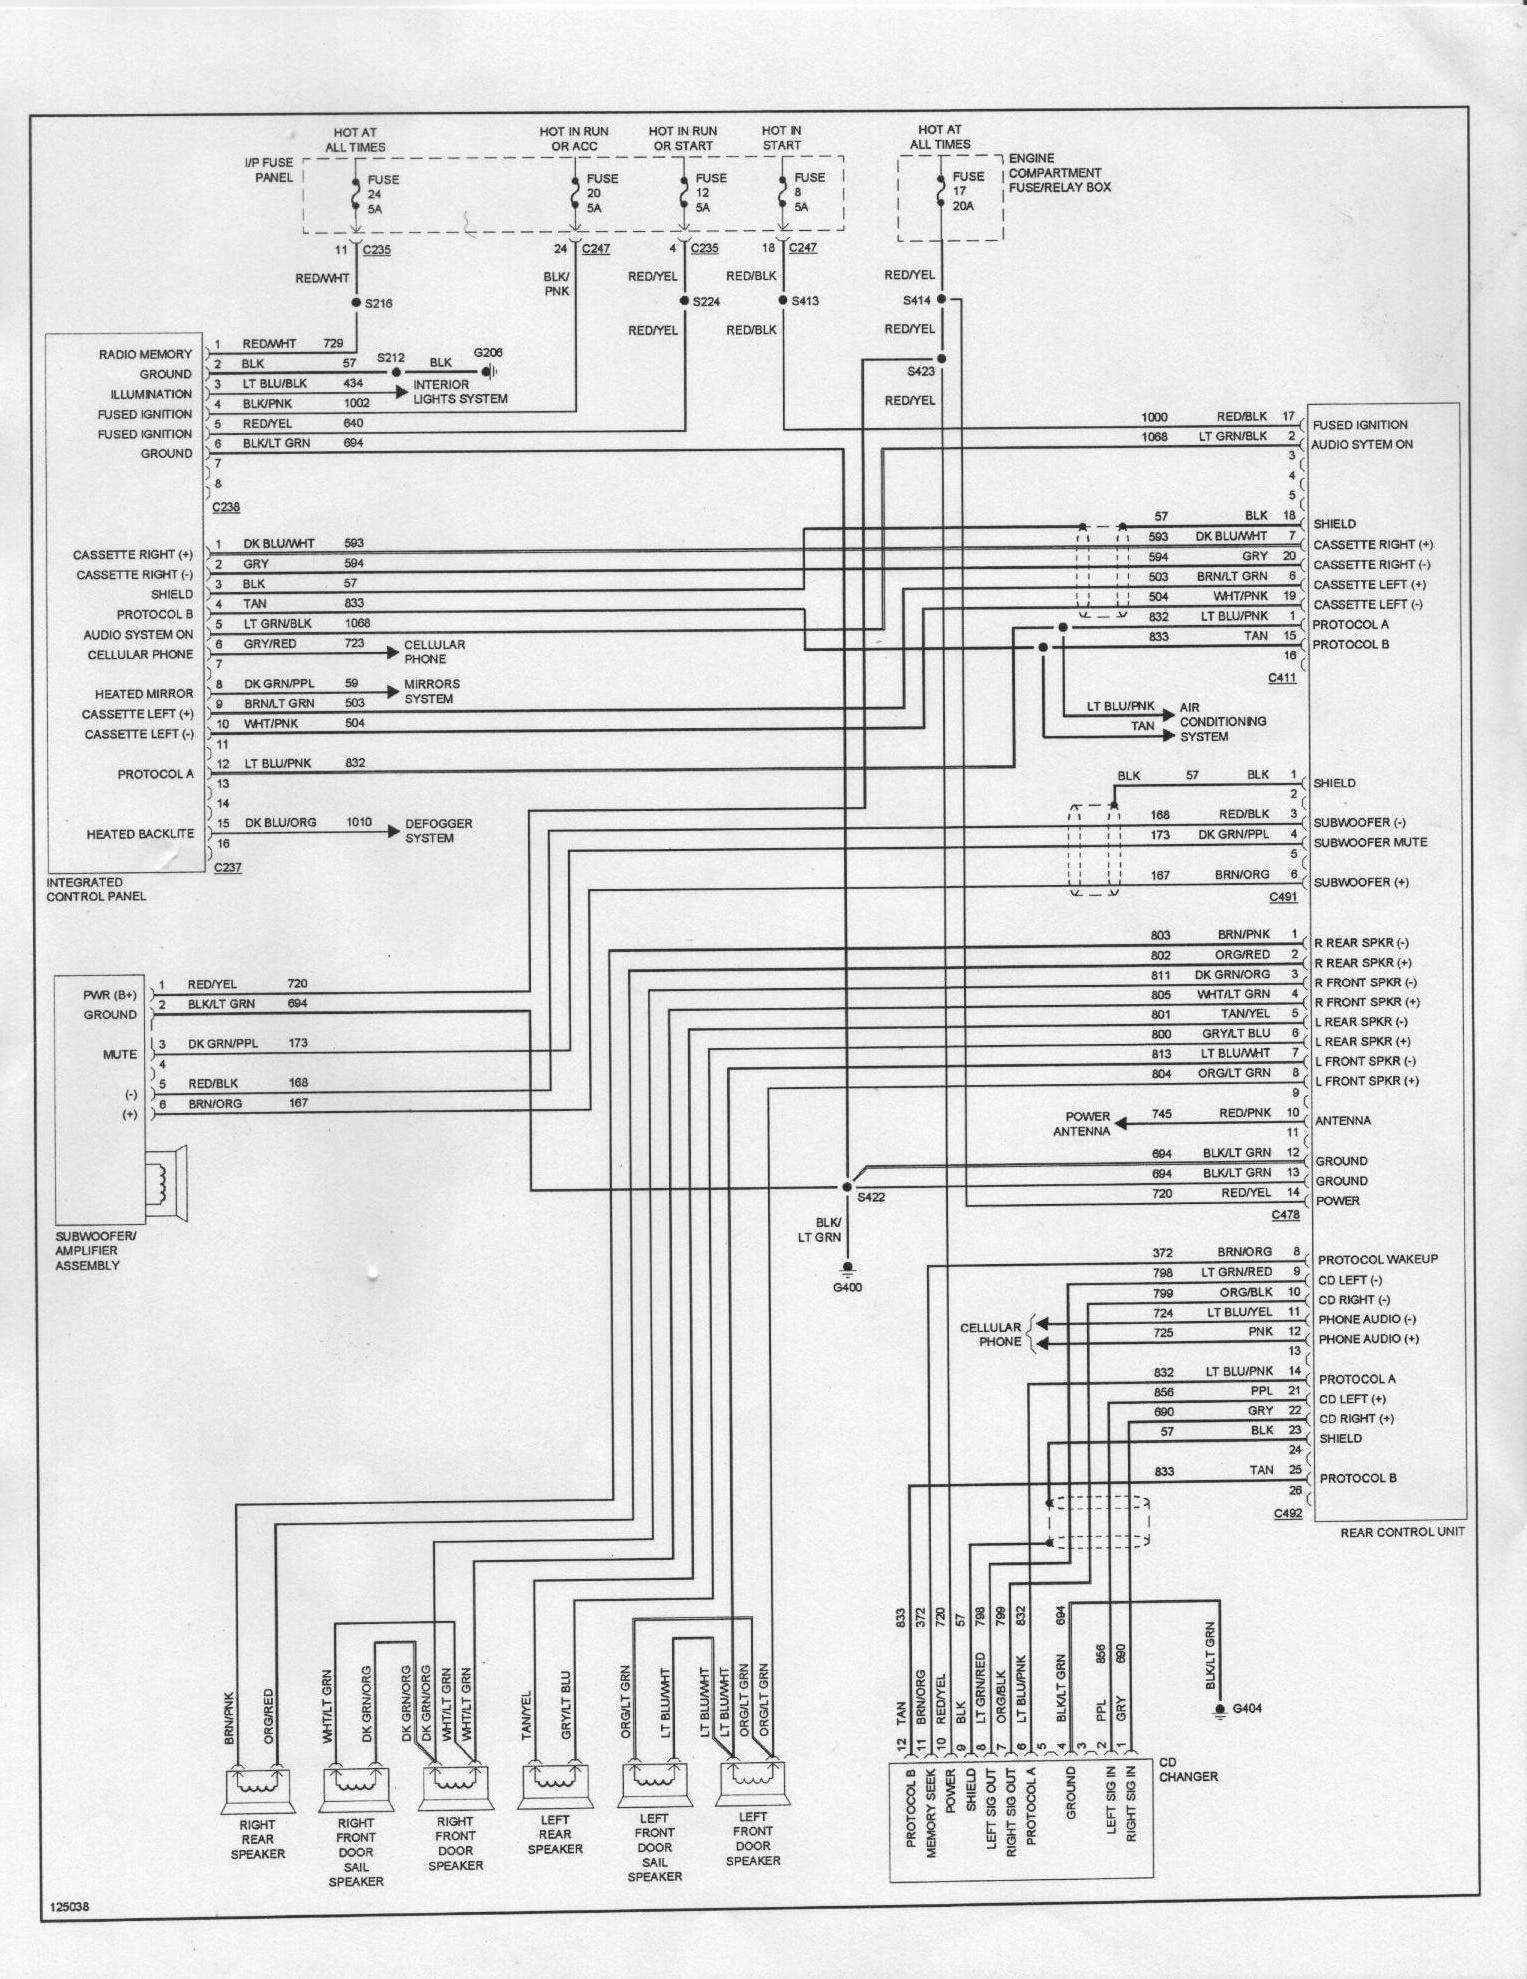 44917d1173064914 wiring diagram ford taurus diagram96 wiring diagram ford taurus taurus car club of america ford ford taurus wiring diagram at edmiracle.co